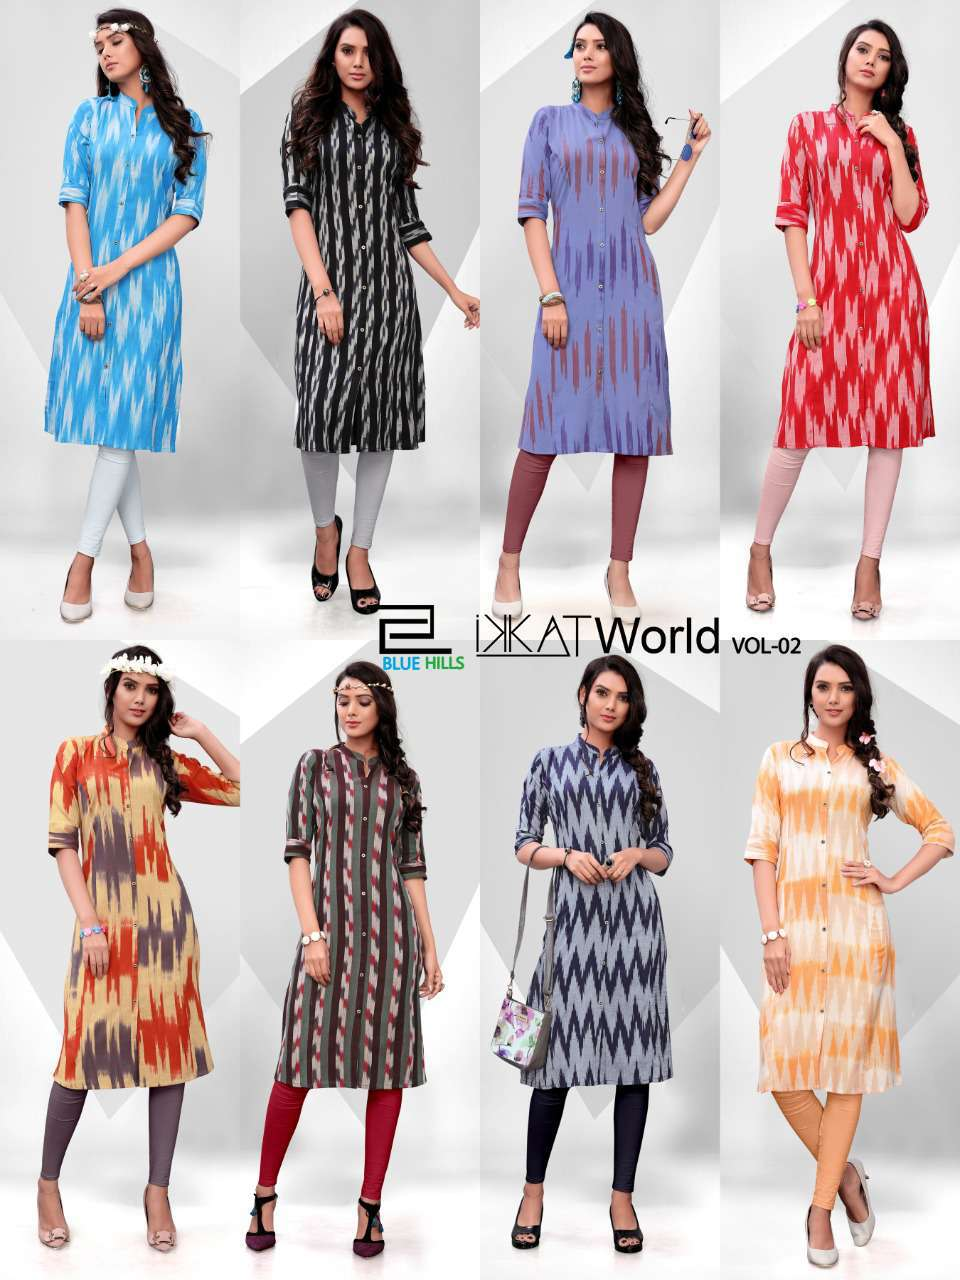 Blue Hills Ikkat World Vol 2 Kurti Wholesale Catalog 8 Pcs 9 - Blue Hills Ikkat World Vol 2 Kurti Wholesale Catalog 8 Pcs